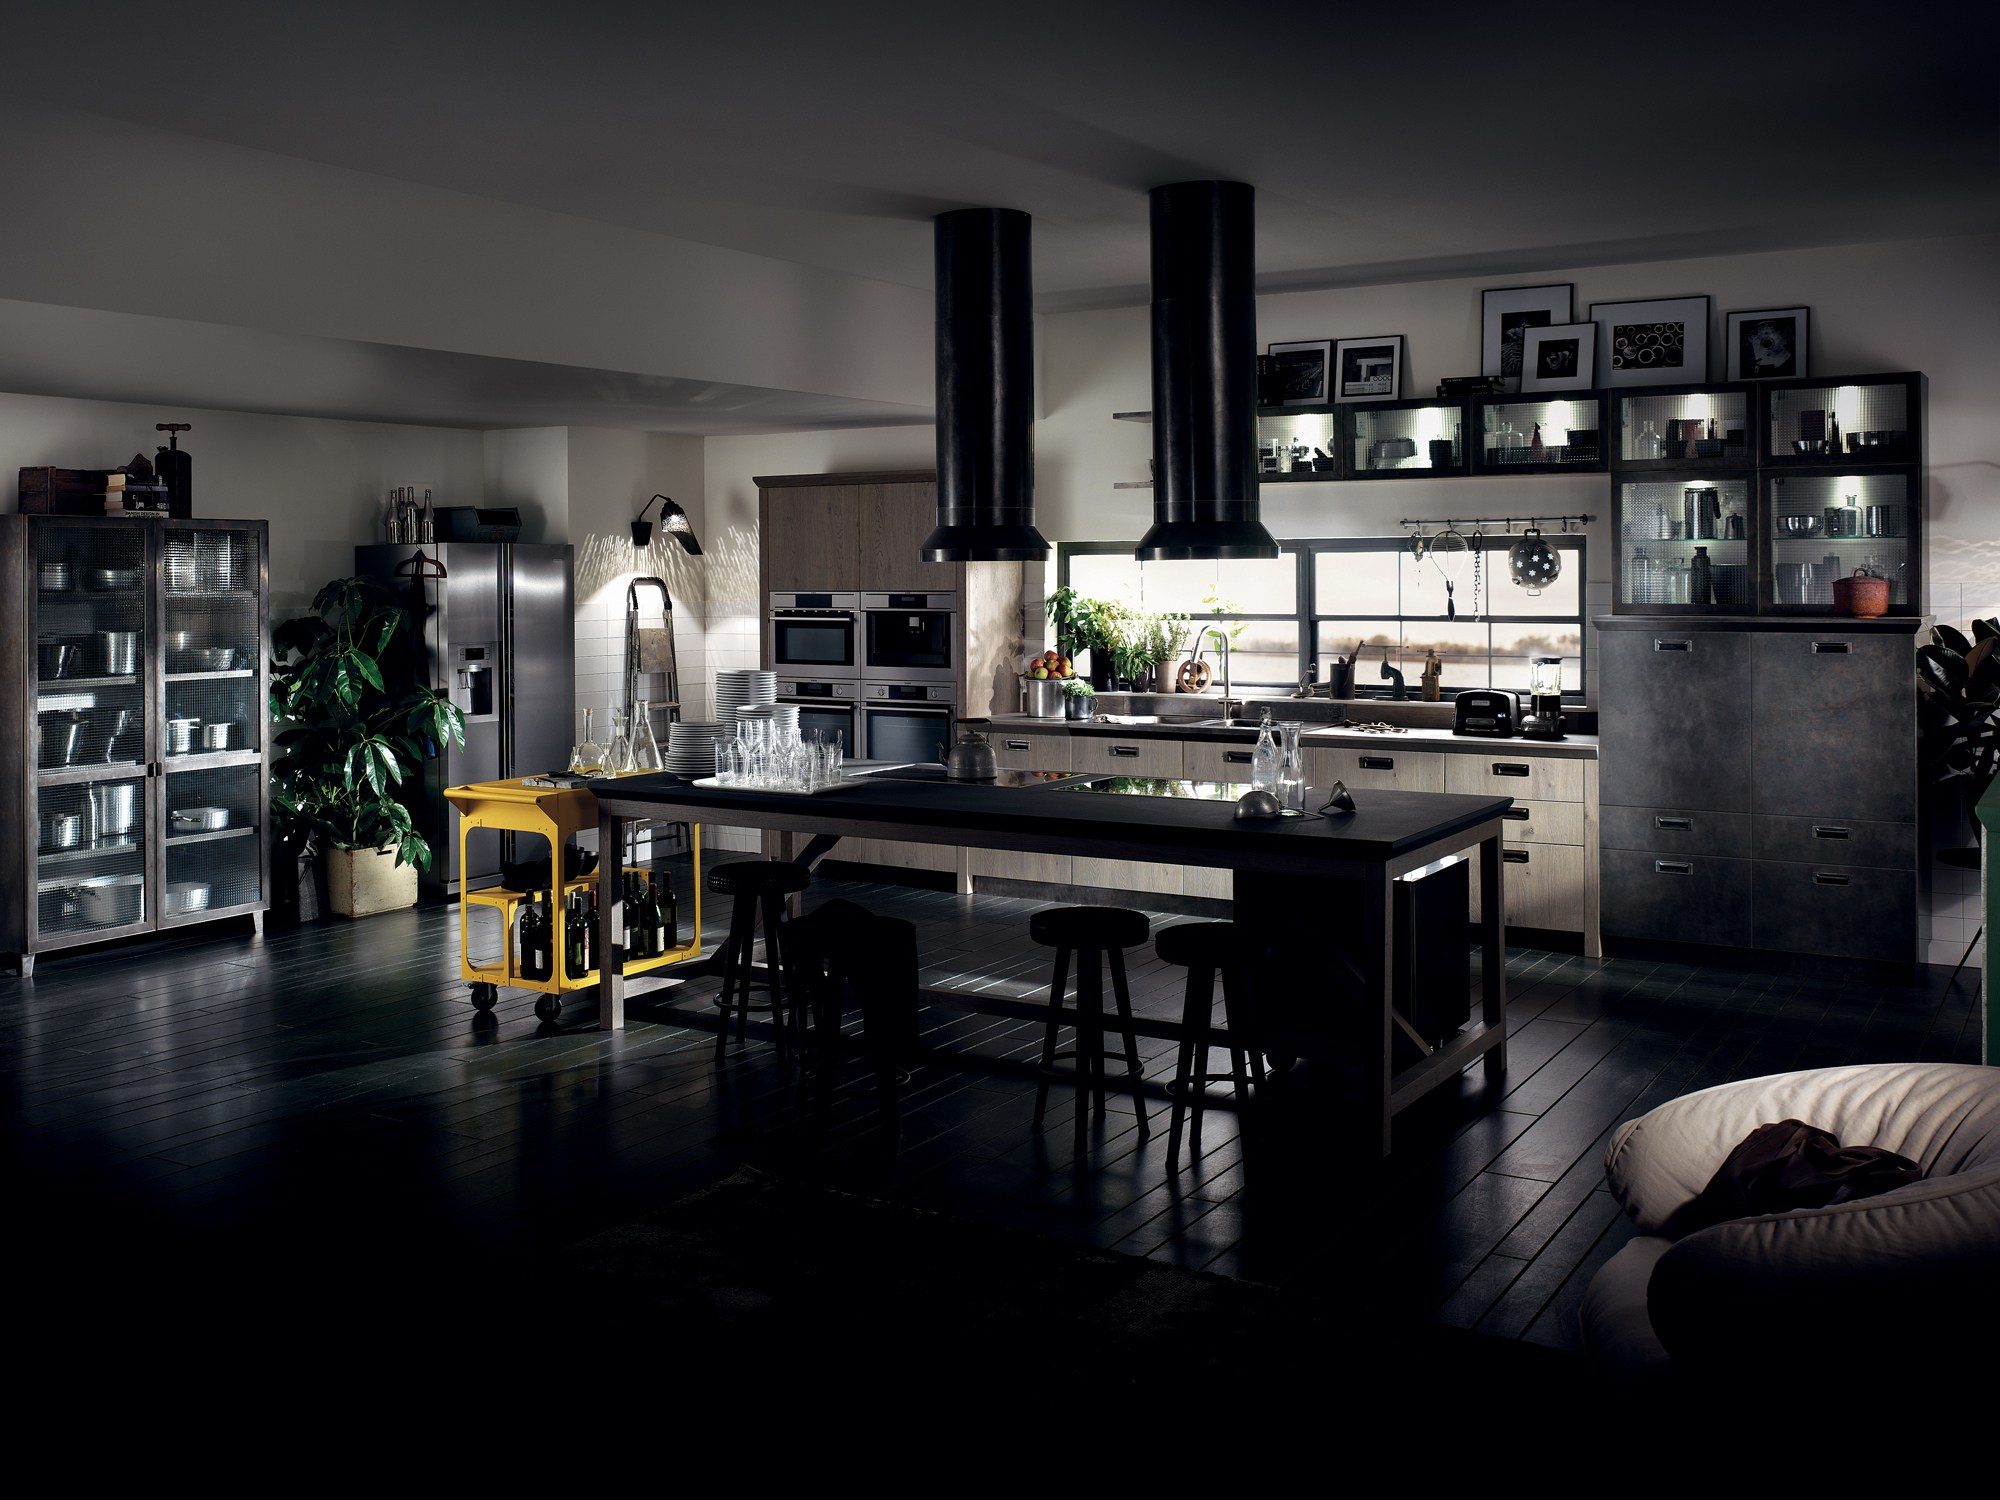 Cucina componibile diesel social kitchen linea scavolini by scavolini design diesel living with - Cucina diesel scavolini ...